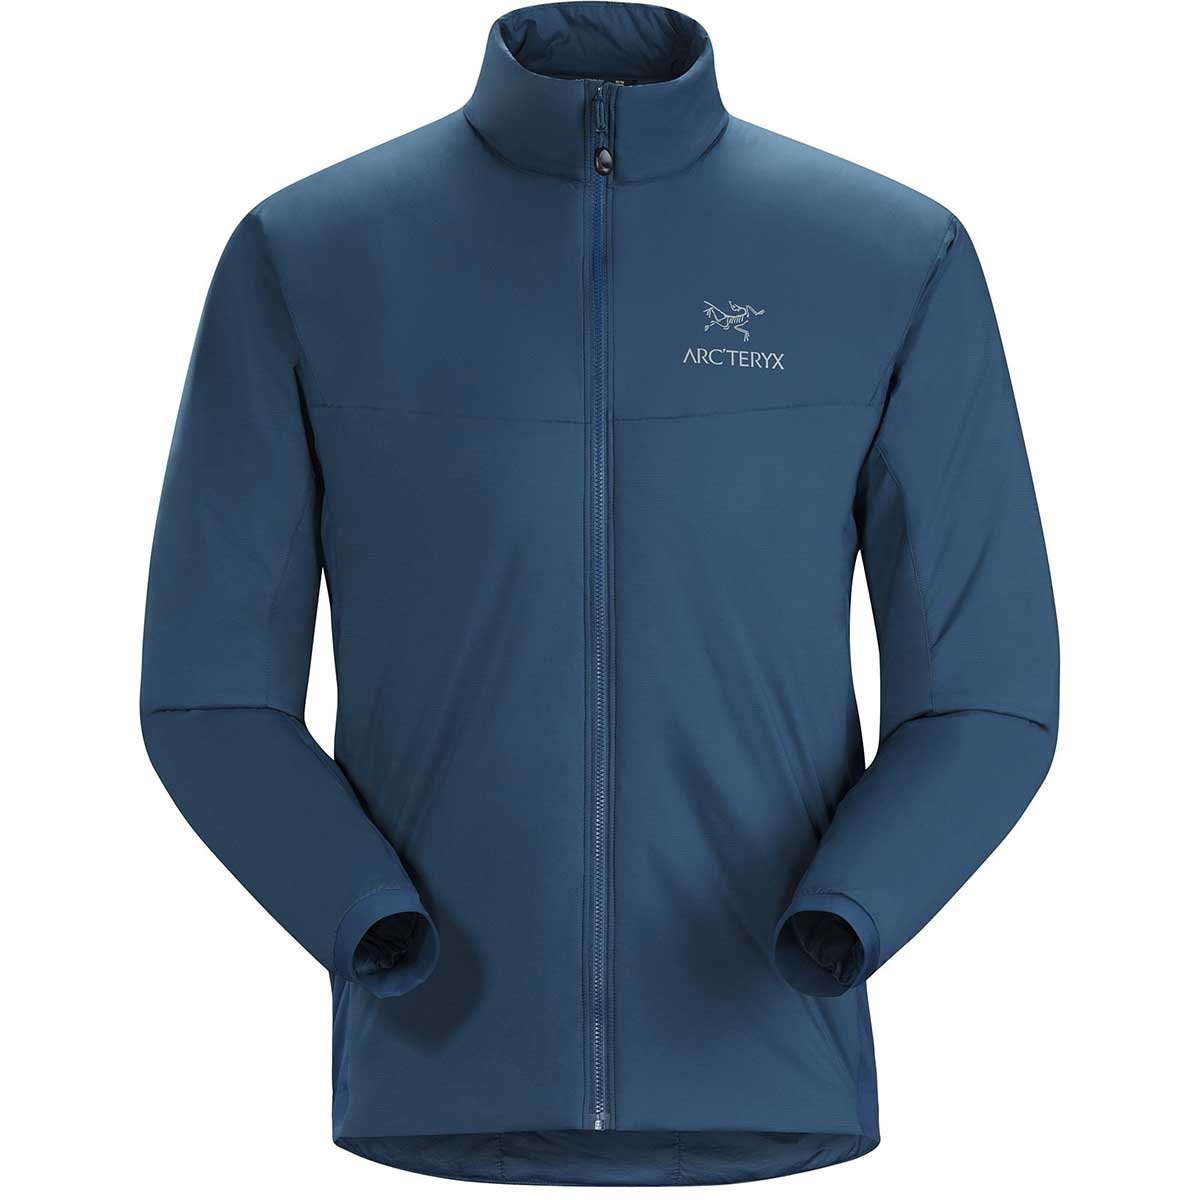 Arcteryx men's Atom LT Jacket in Nereus front view